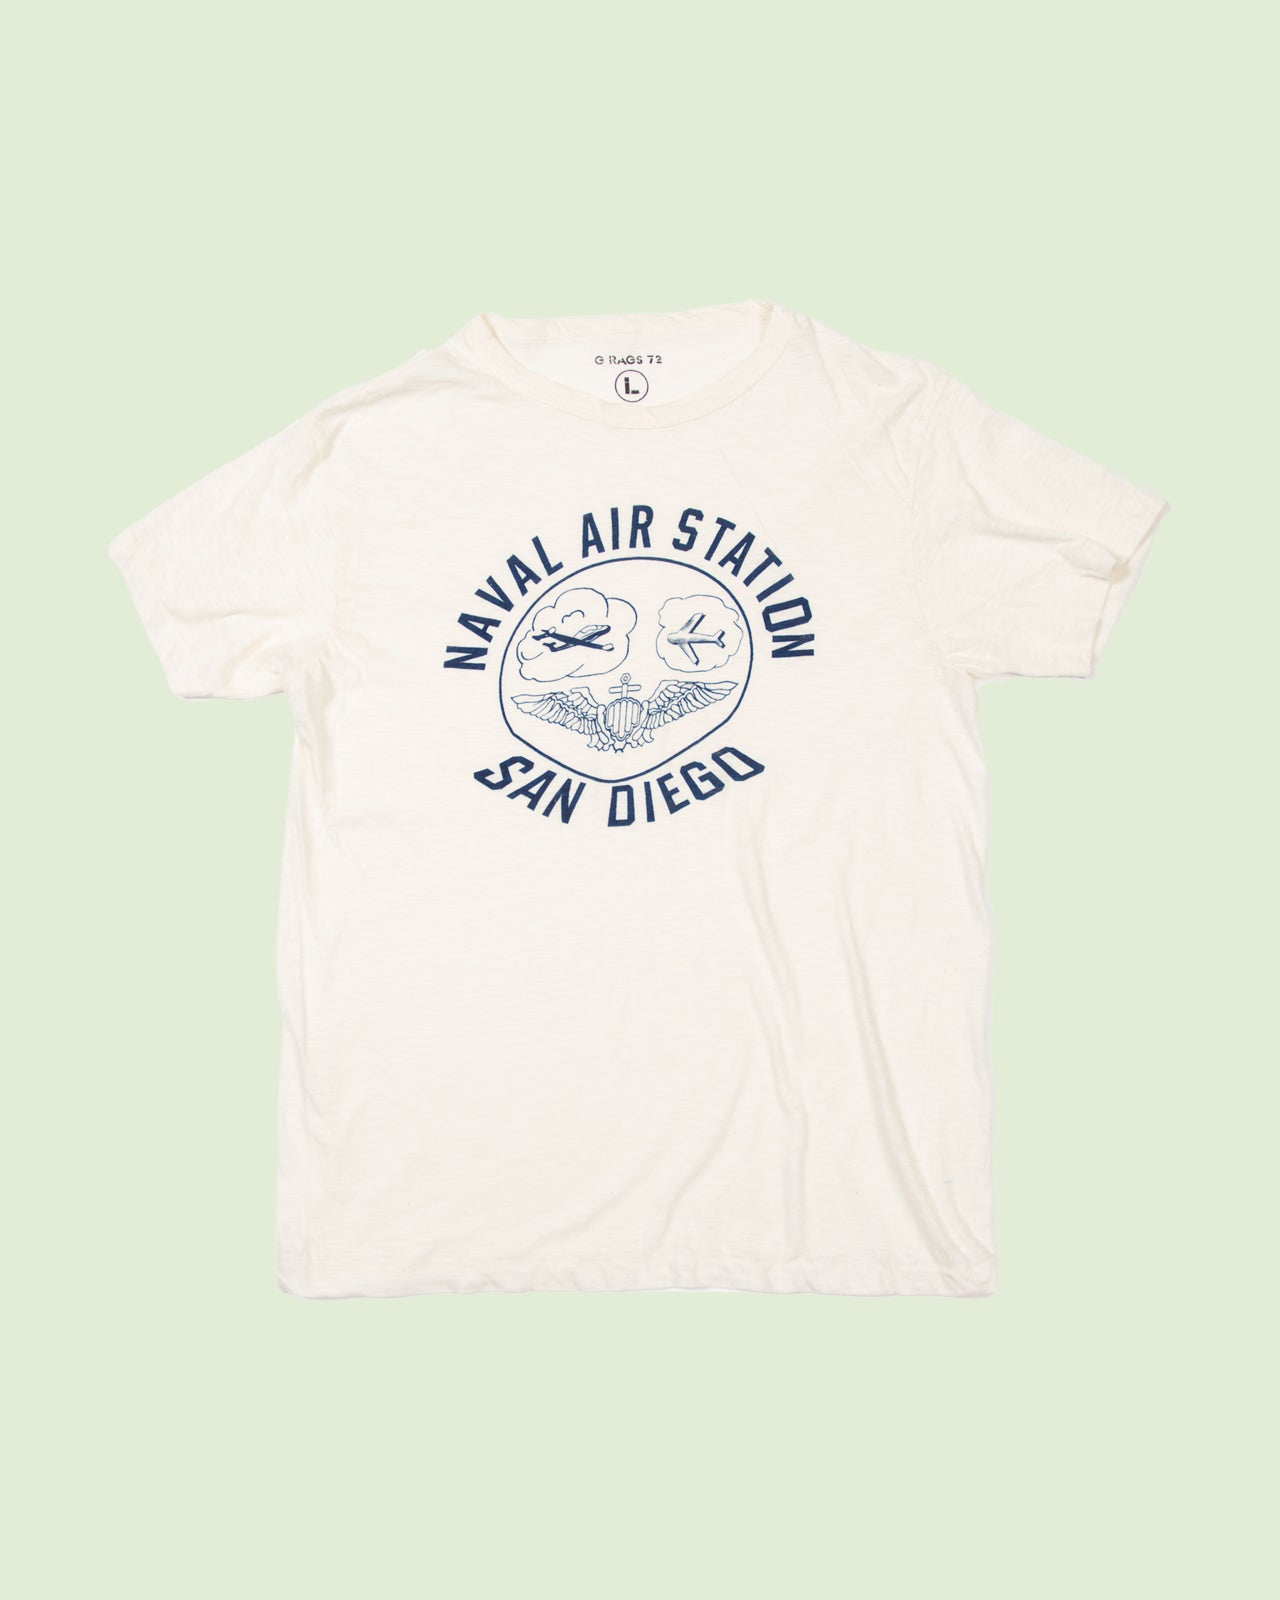 Naval Air Station San Diego T-Shirt